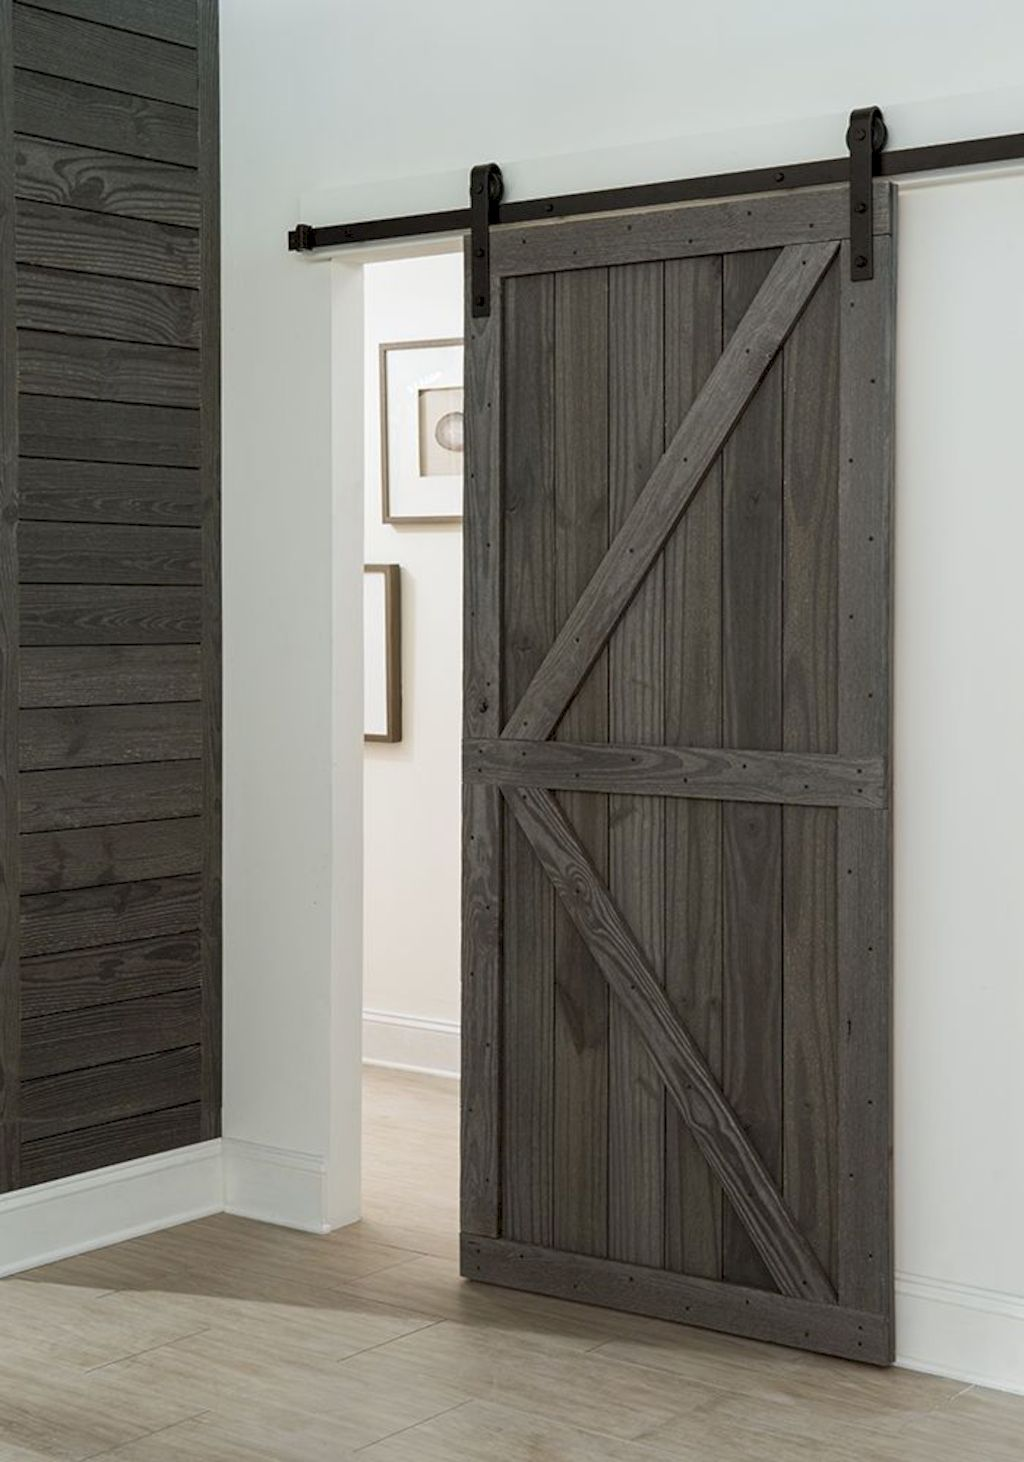 Barn style sliding doors applied as bedroom doors showing a rustic accent in the modern country homes Image 32